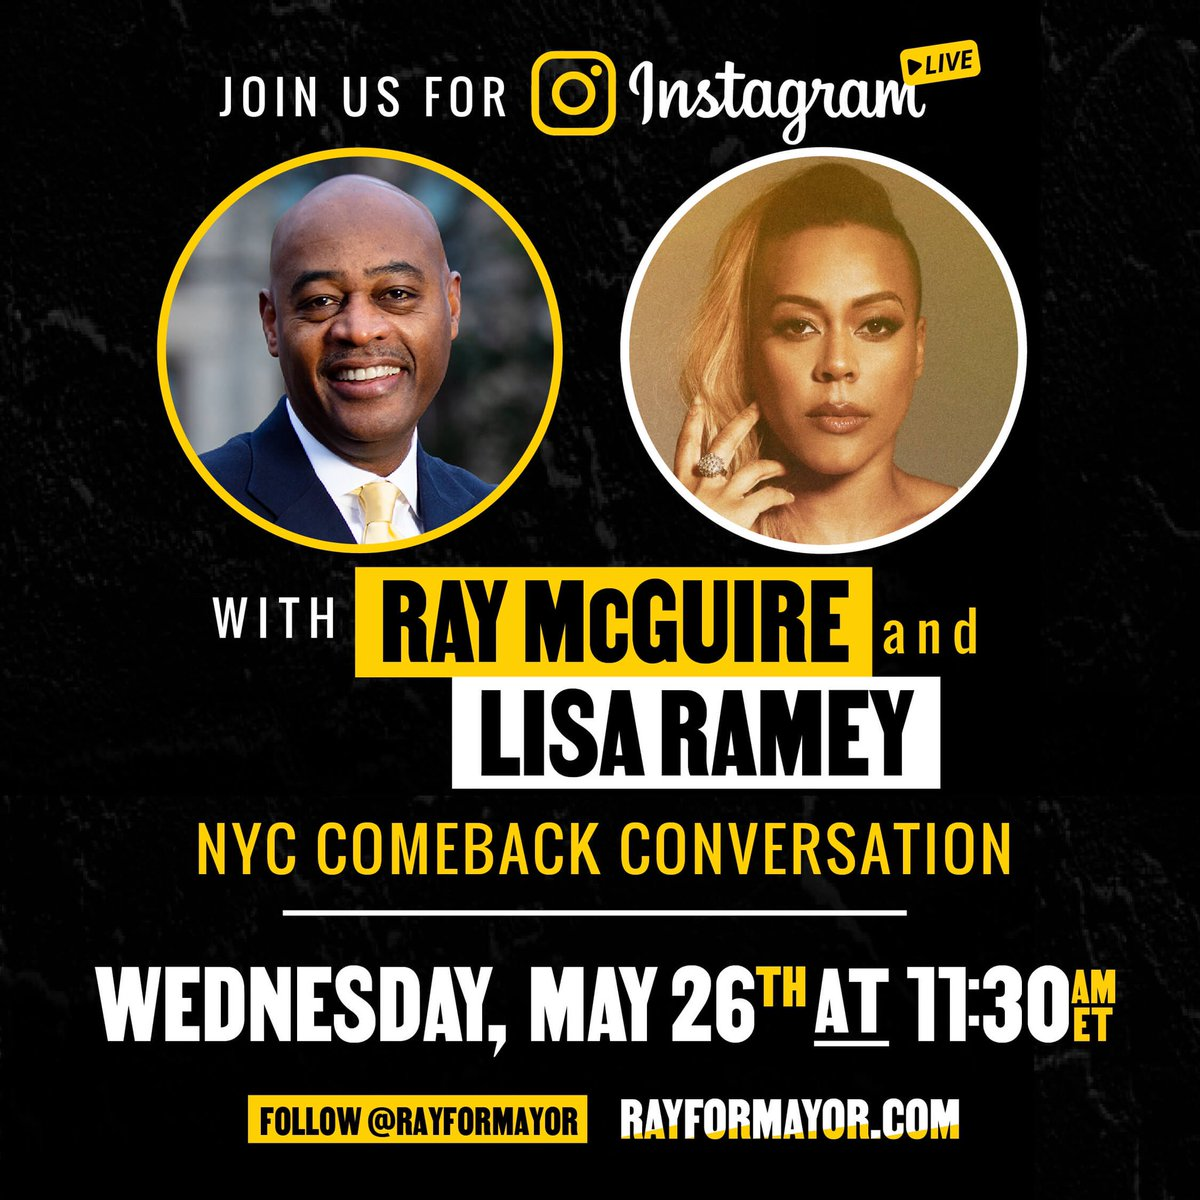 Please join the amazing @lisarameymusic one of the extraordinary #WomenForRay Queens as she speaks with @RayForMayor on IG live TODAY at 11:30am about his greatest most inclusive comeback plan in New York City history!!